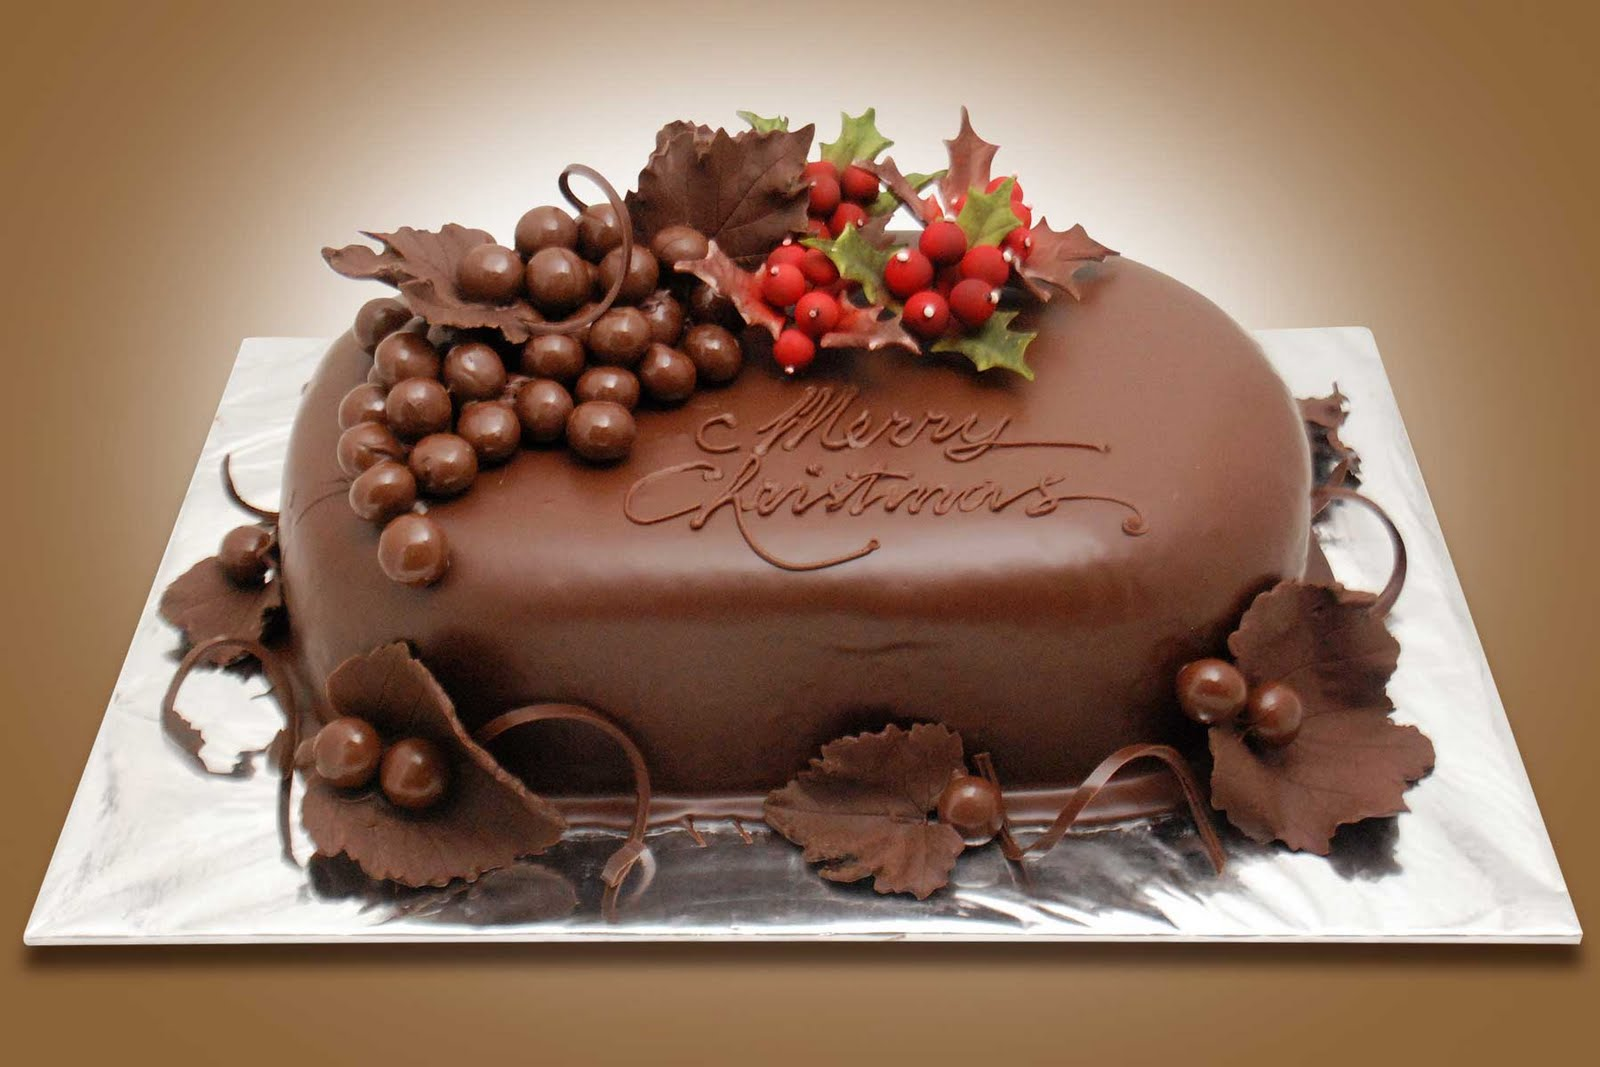 Zeitschrift Cake Art : 1000+ images about Chocolate Cakes & Pastries on Pinterest ...